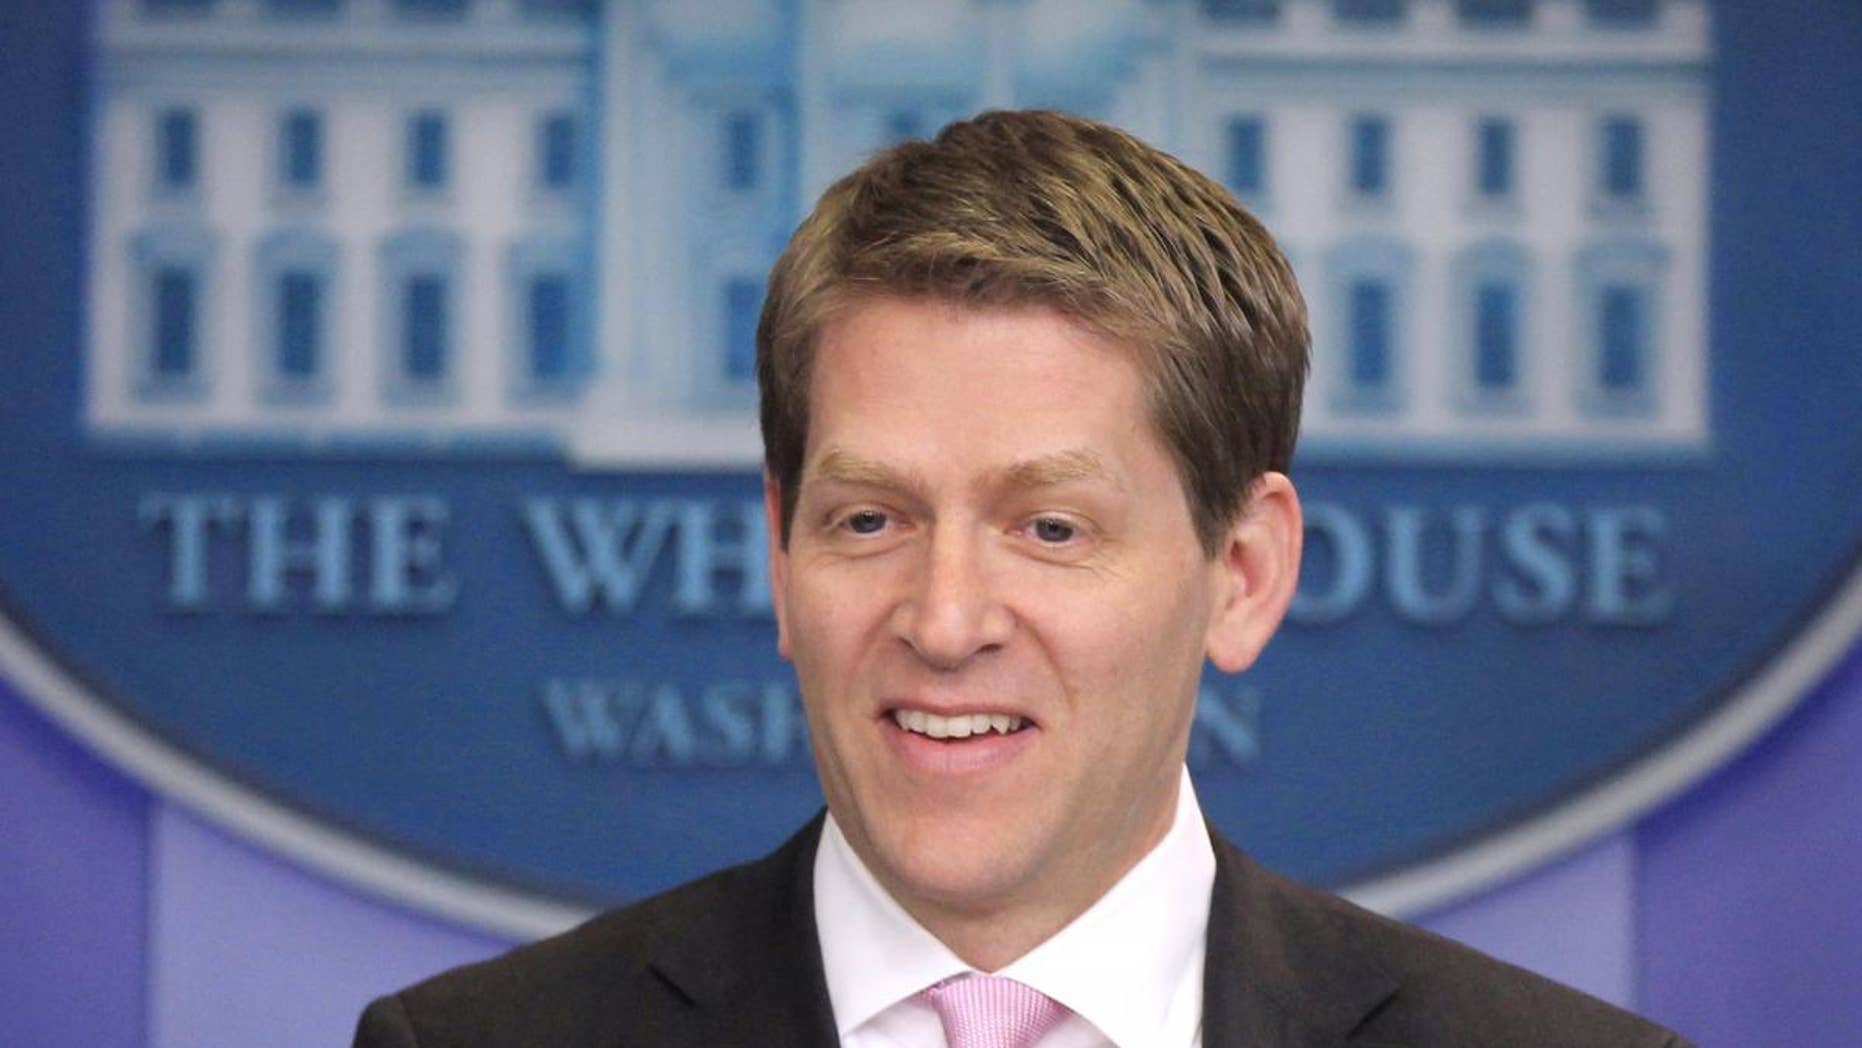 White House Press Secretary Jay Carney briefs reporters at the White House in Washington, Friday, April 1, 2011. (AP Photo/Charles Dharapak)